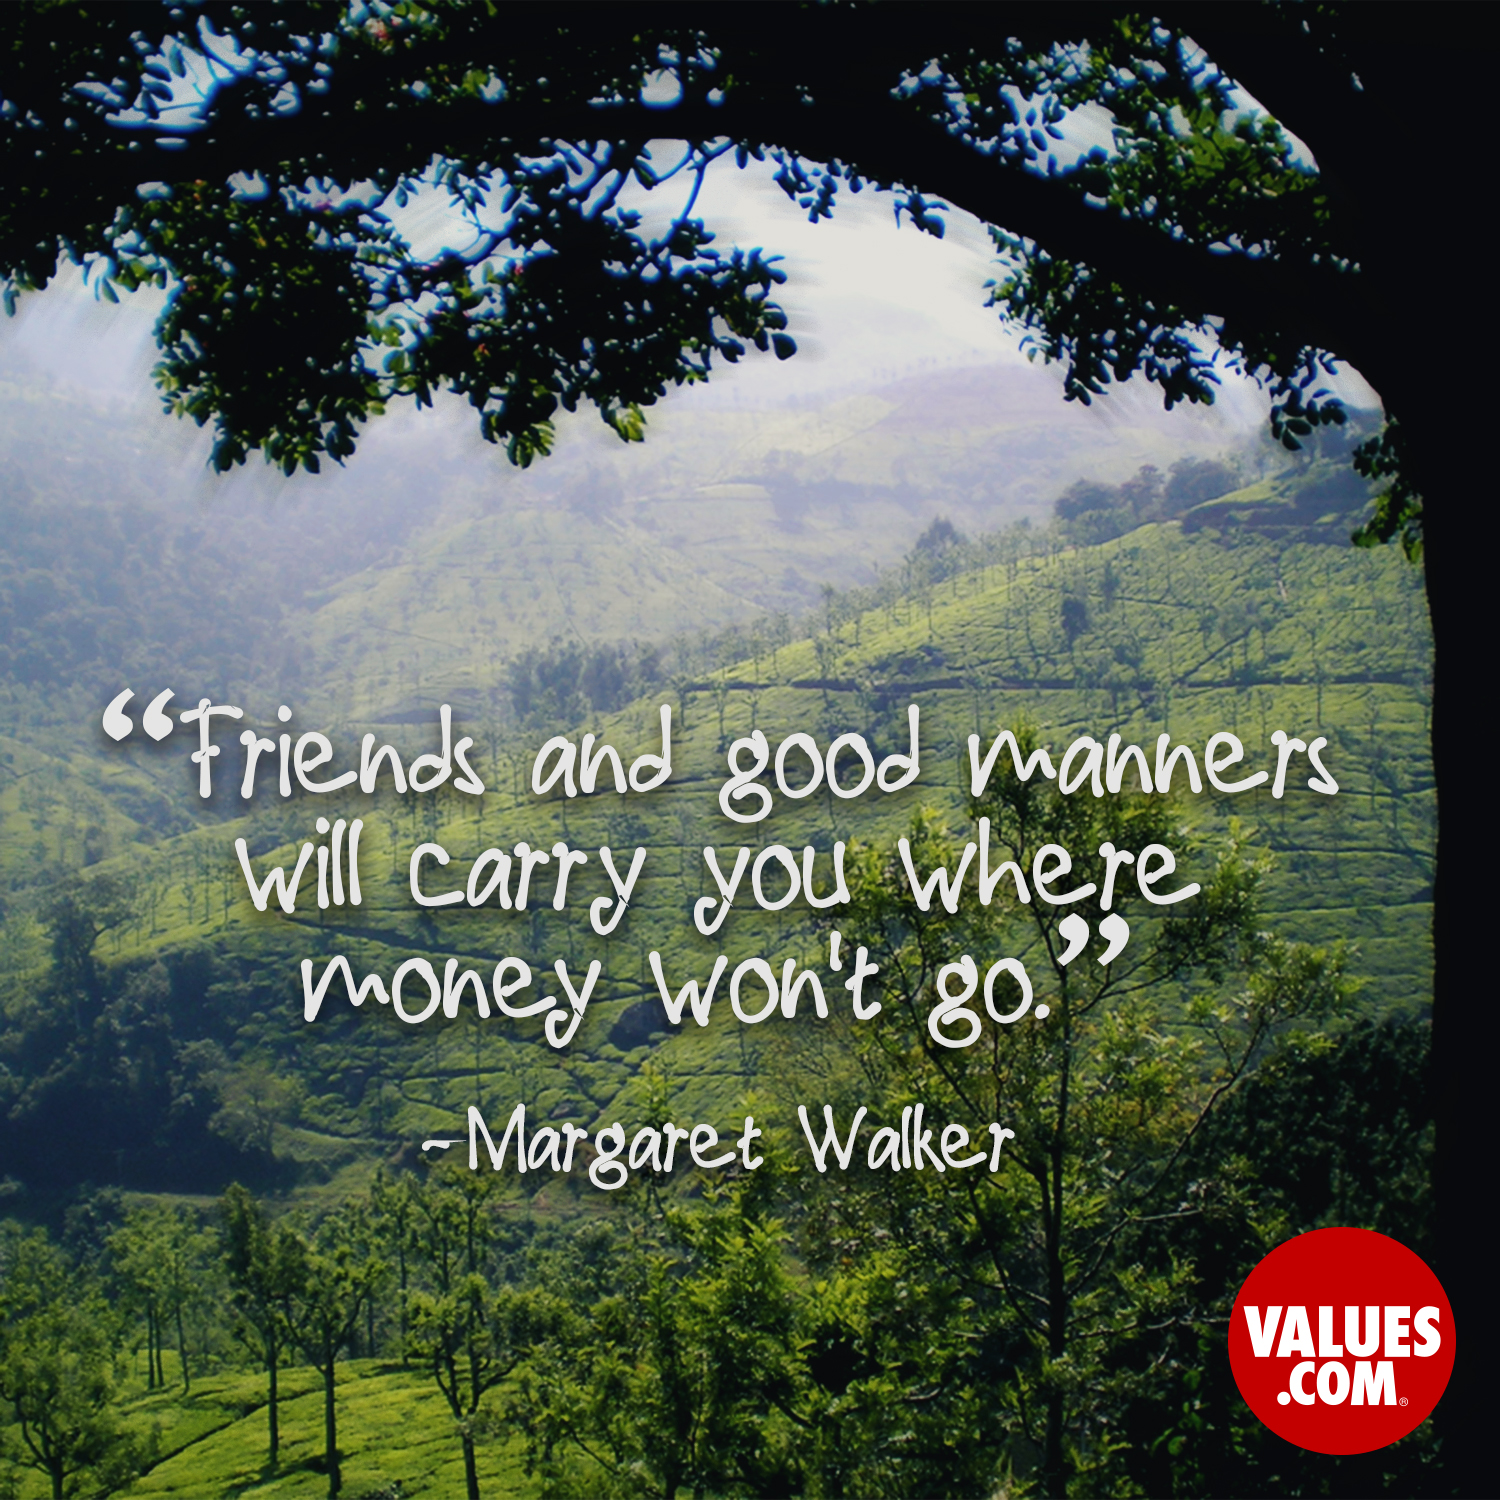 Friends and good manners will carry you where money won't go. —Margaret Walker